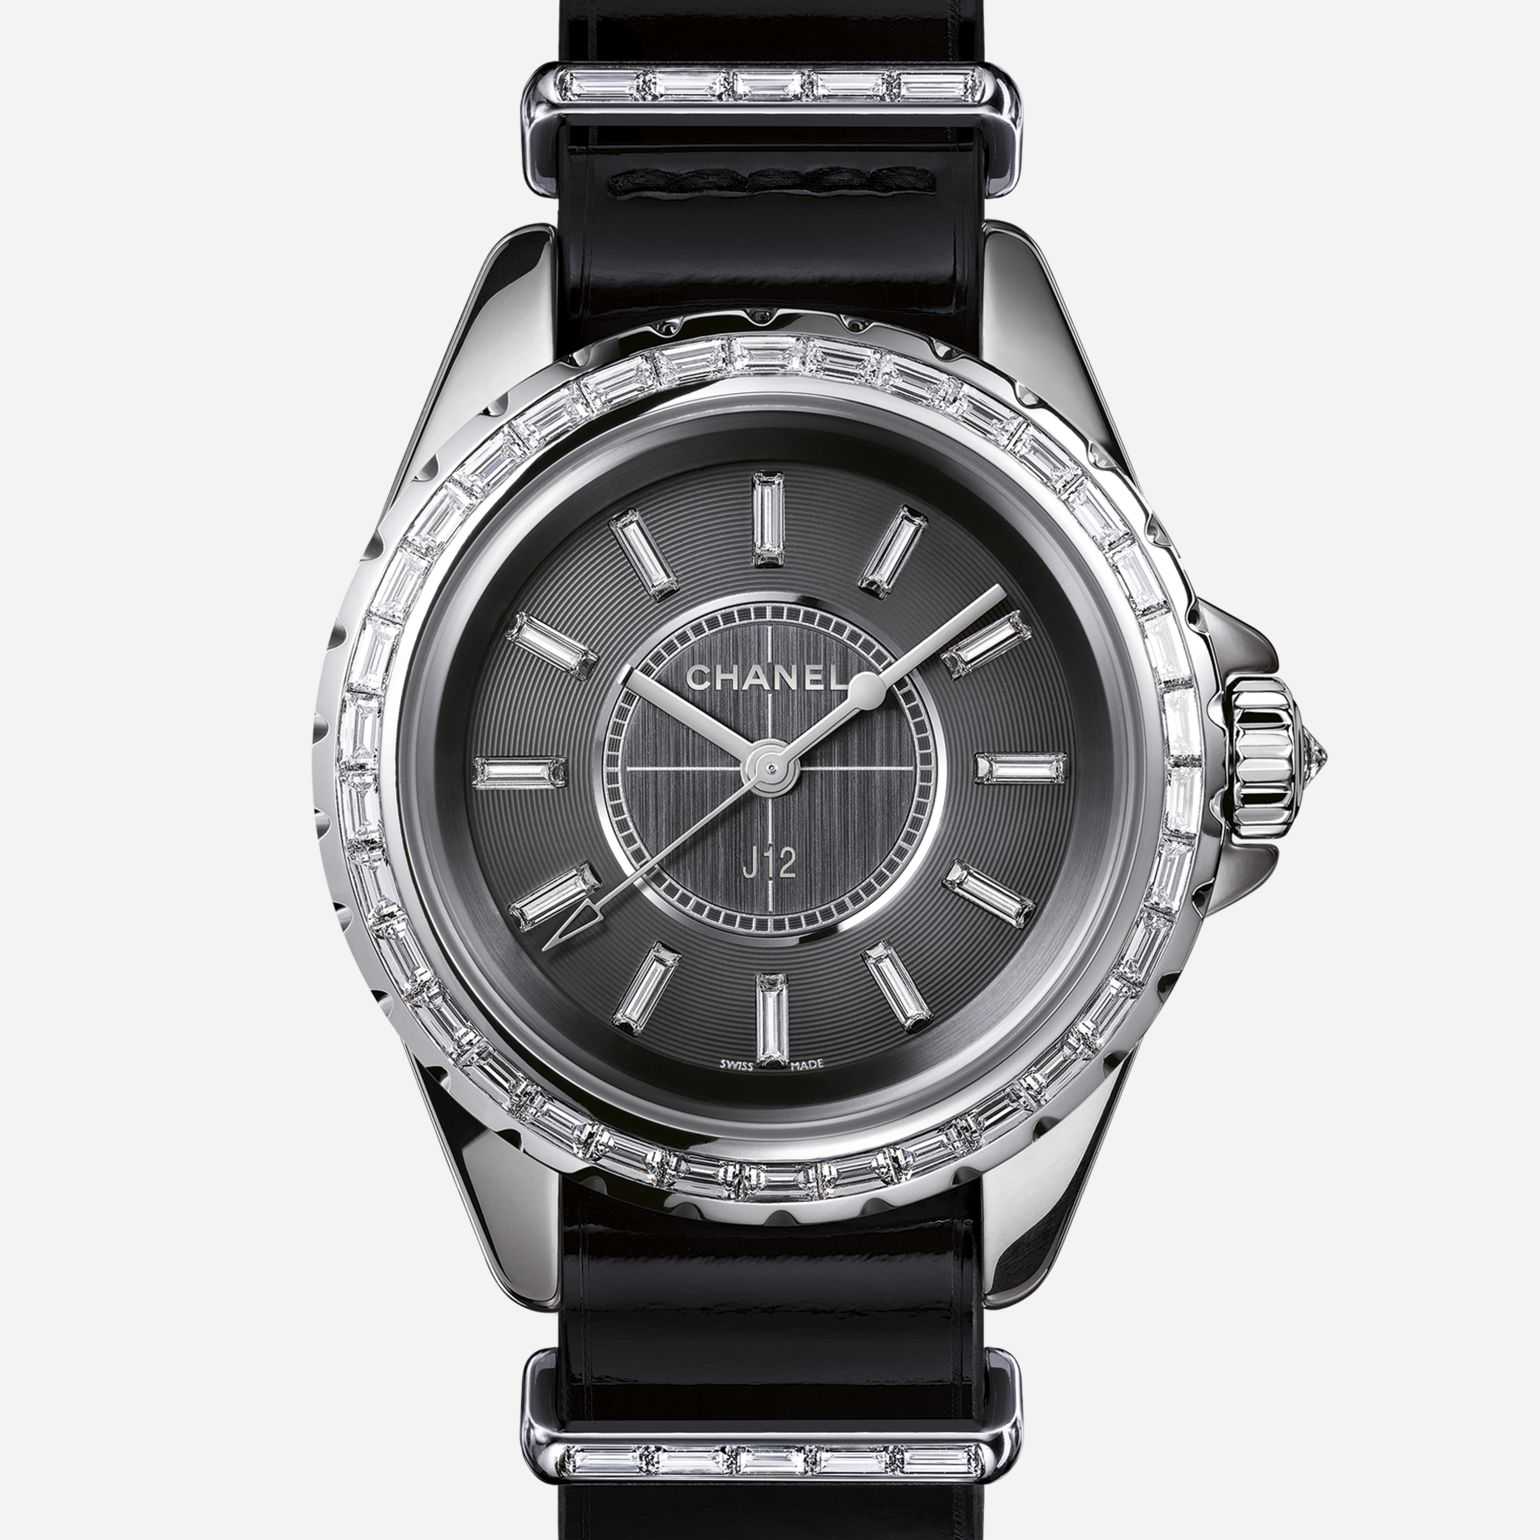 J12-G10 Jewelry Watch Titanium ceramic and white gold, baguette-cut diamond bezel and indicators